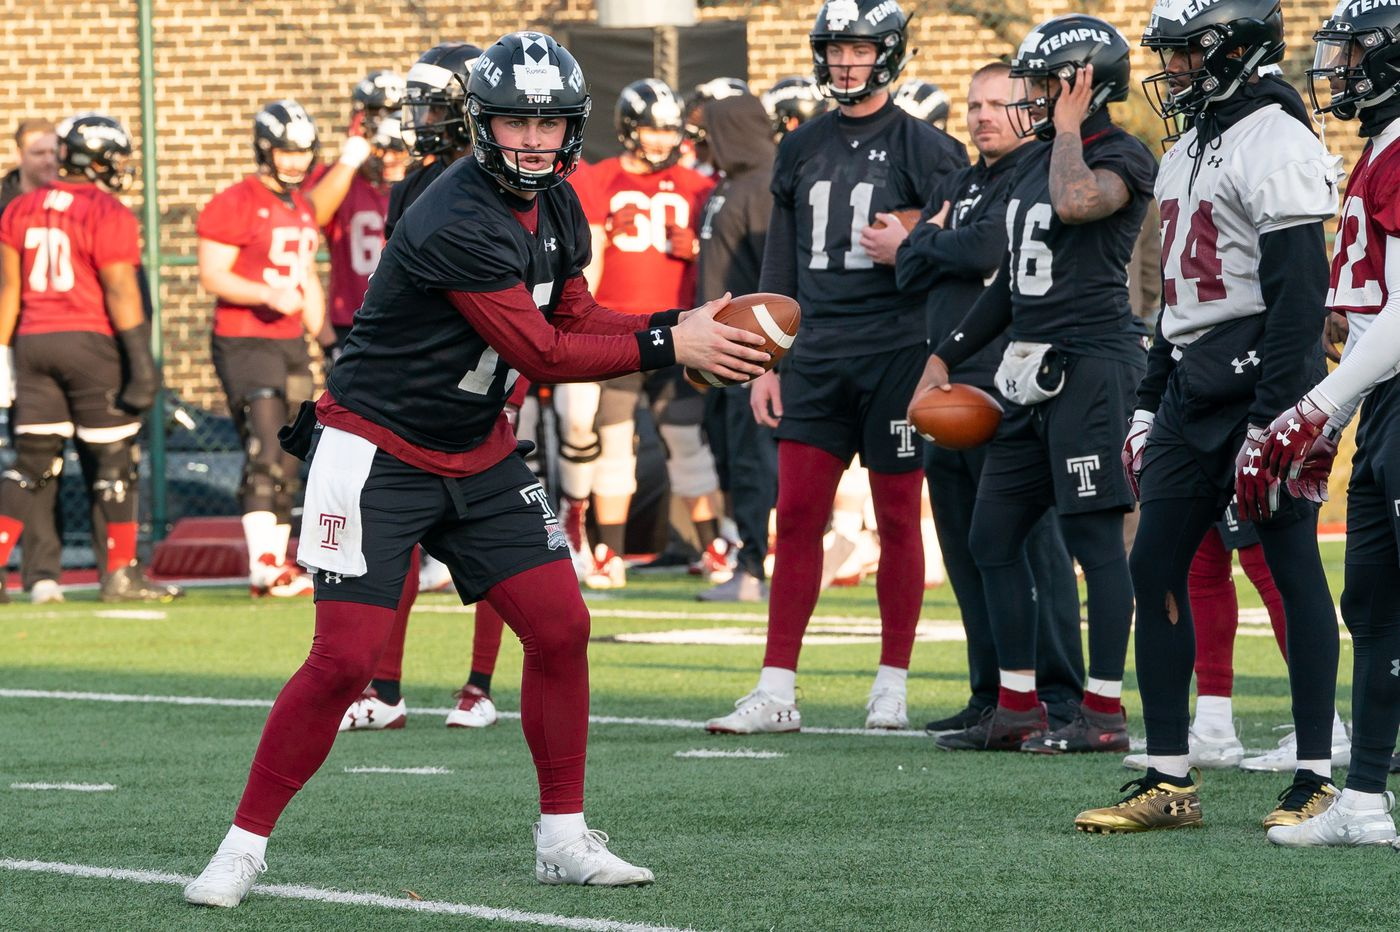 Temple QB Anthony Russo misses practice with calf injury